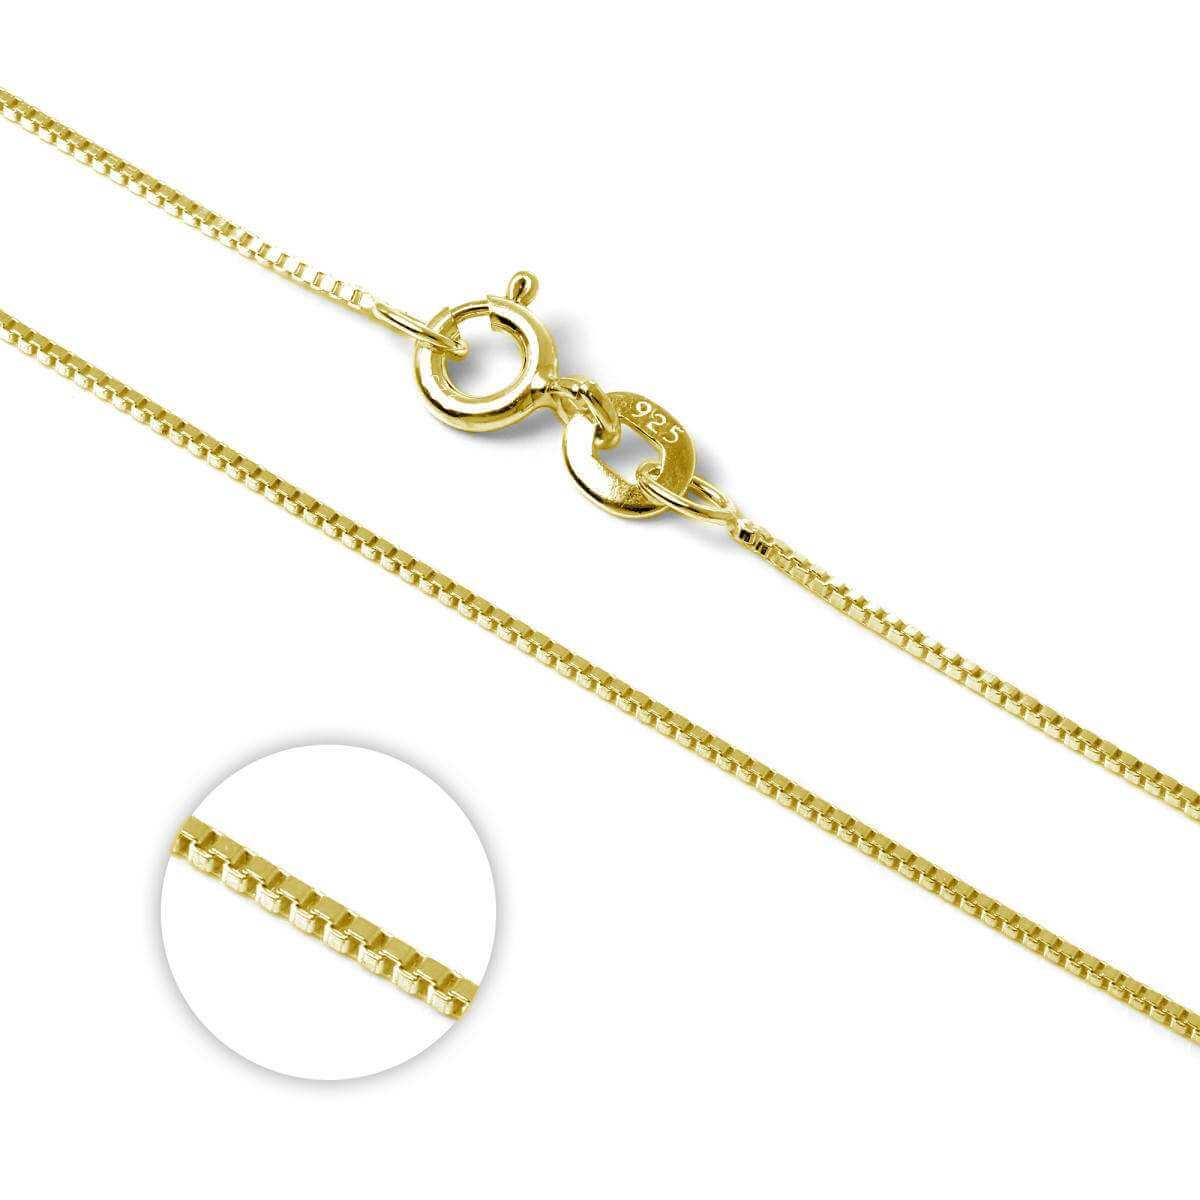 Gold Plated Sterling Silver Box Chain 16 Inches